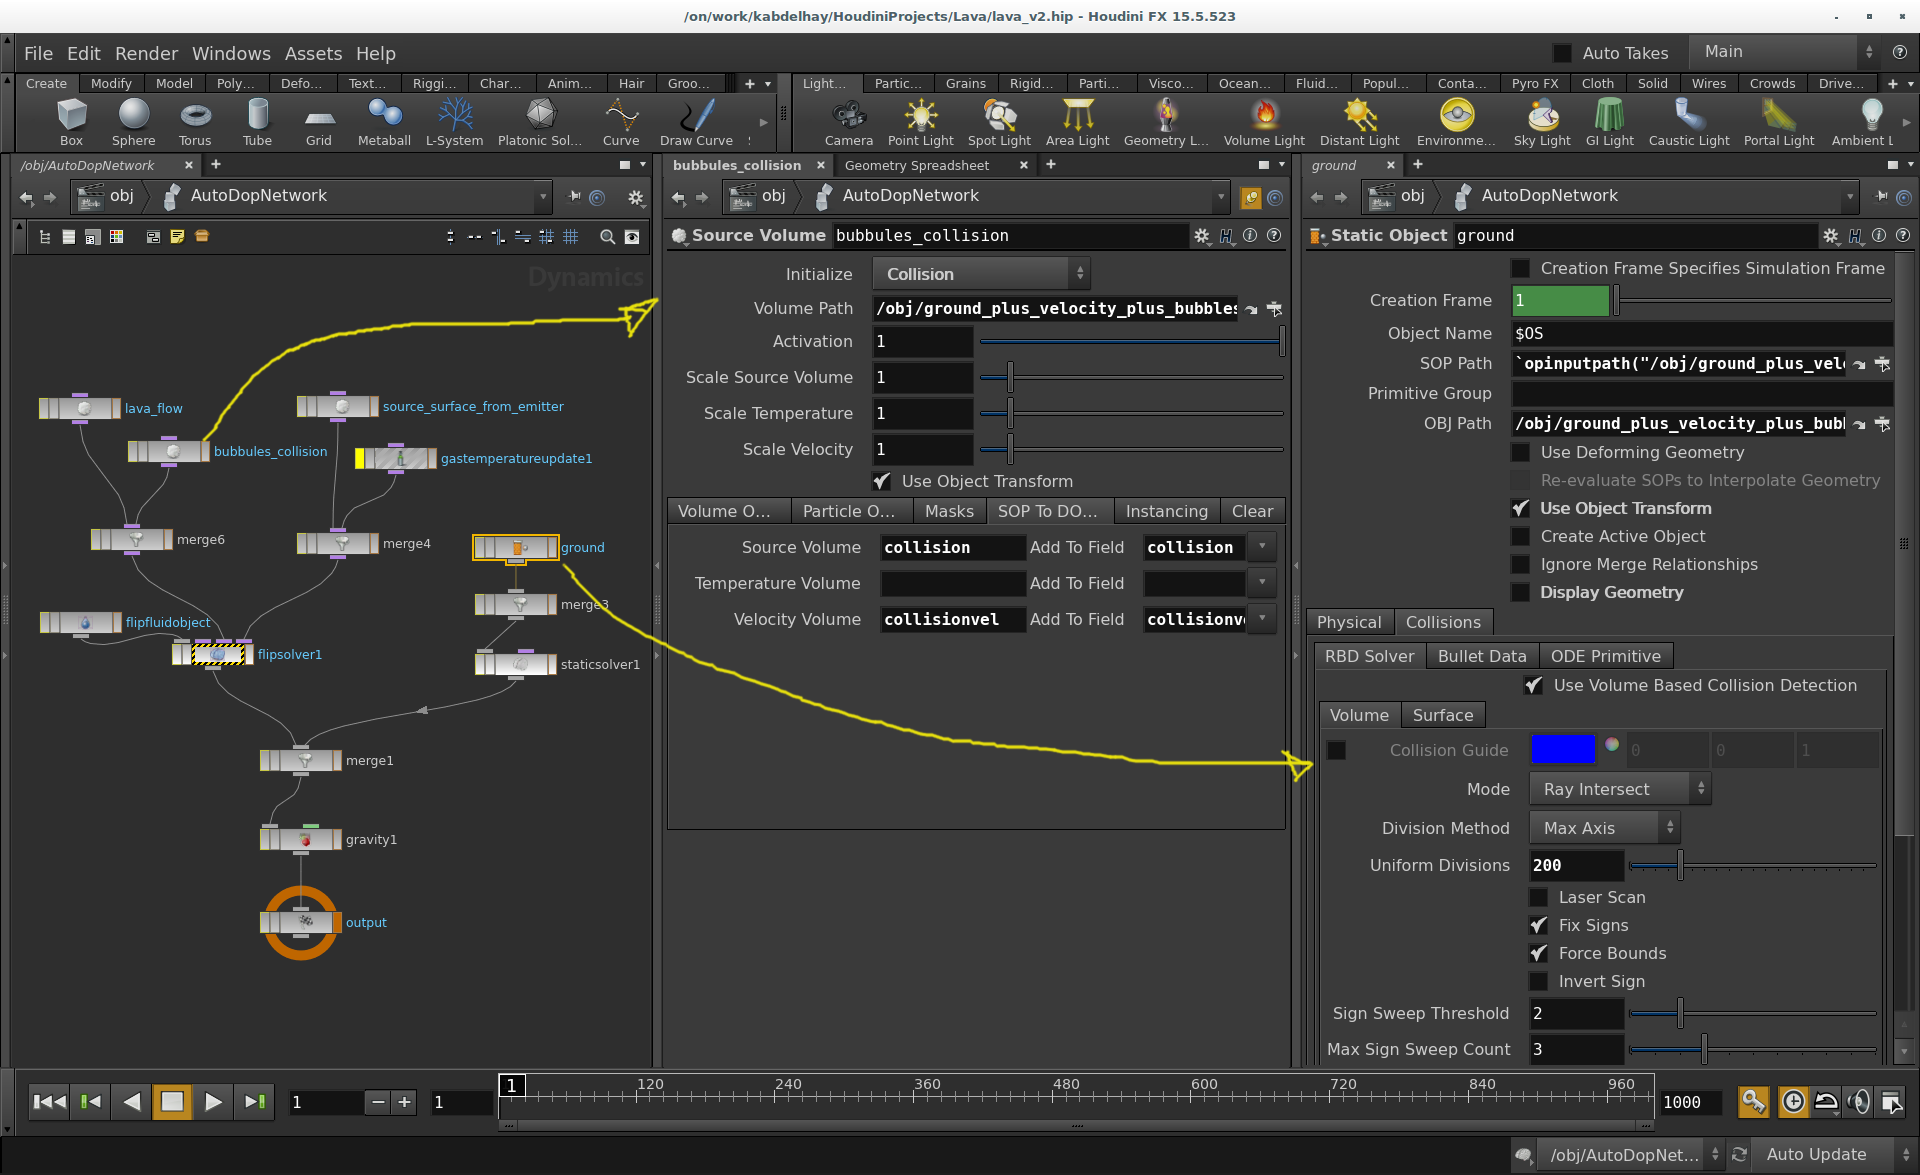 FLIP Particles Exploding? - General Houdini Questions - od|forum